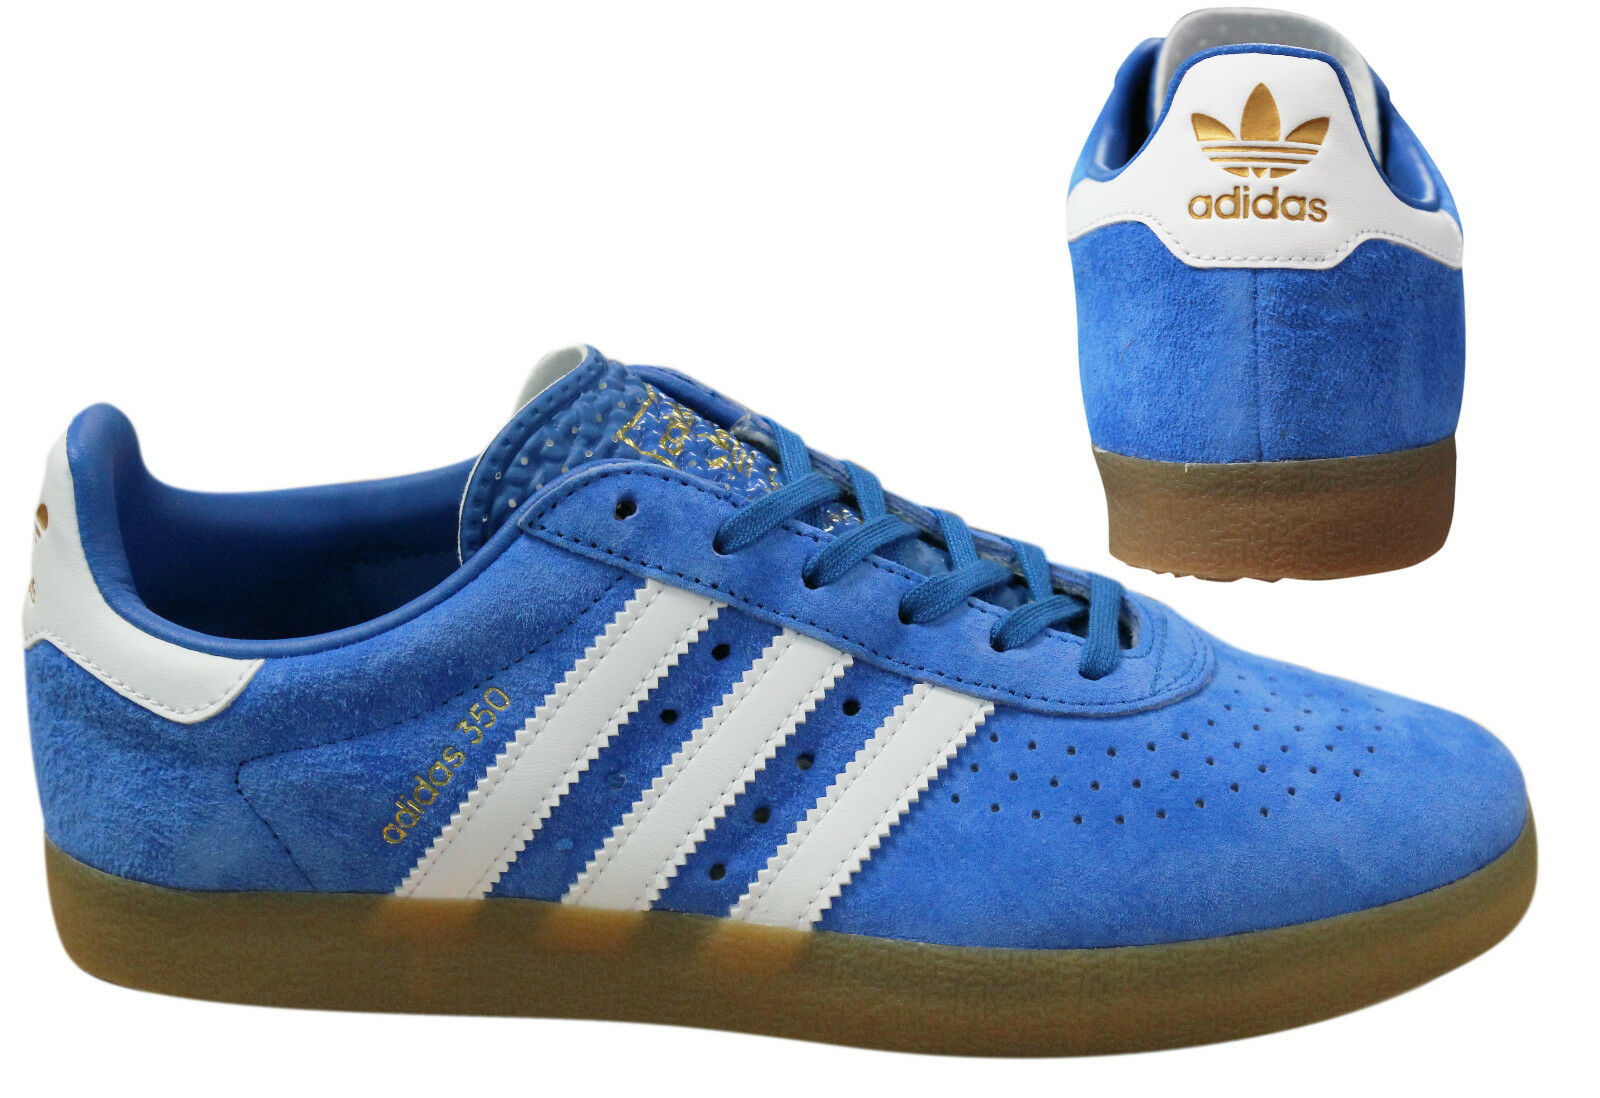 Adidas Originals 350 Baskets Homme à Lacets Chaussures Facile Bleu BY1862 M11